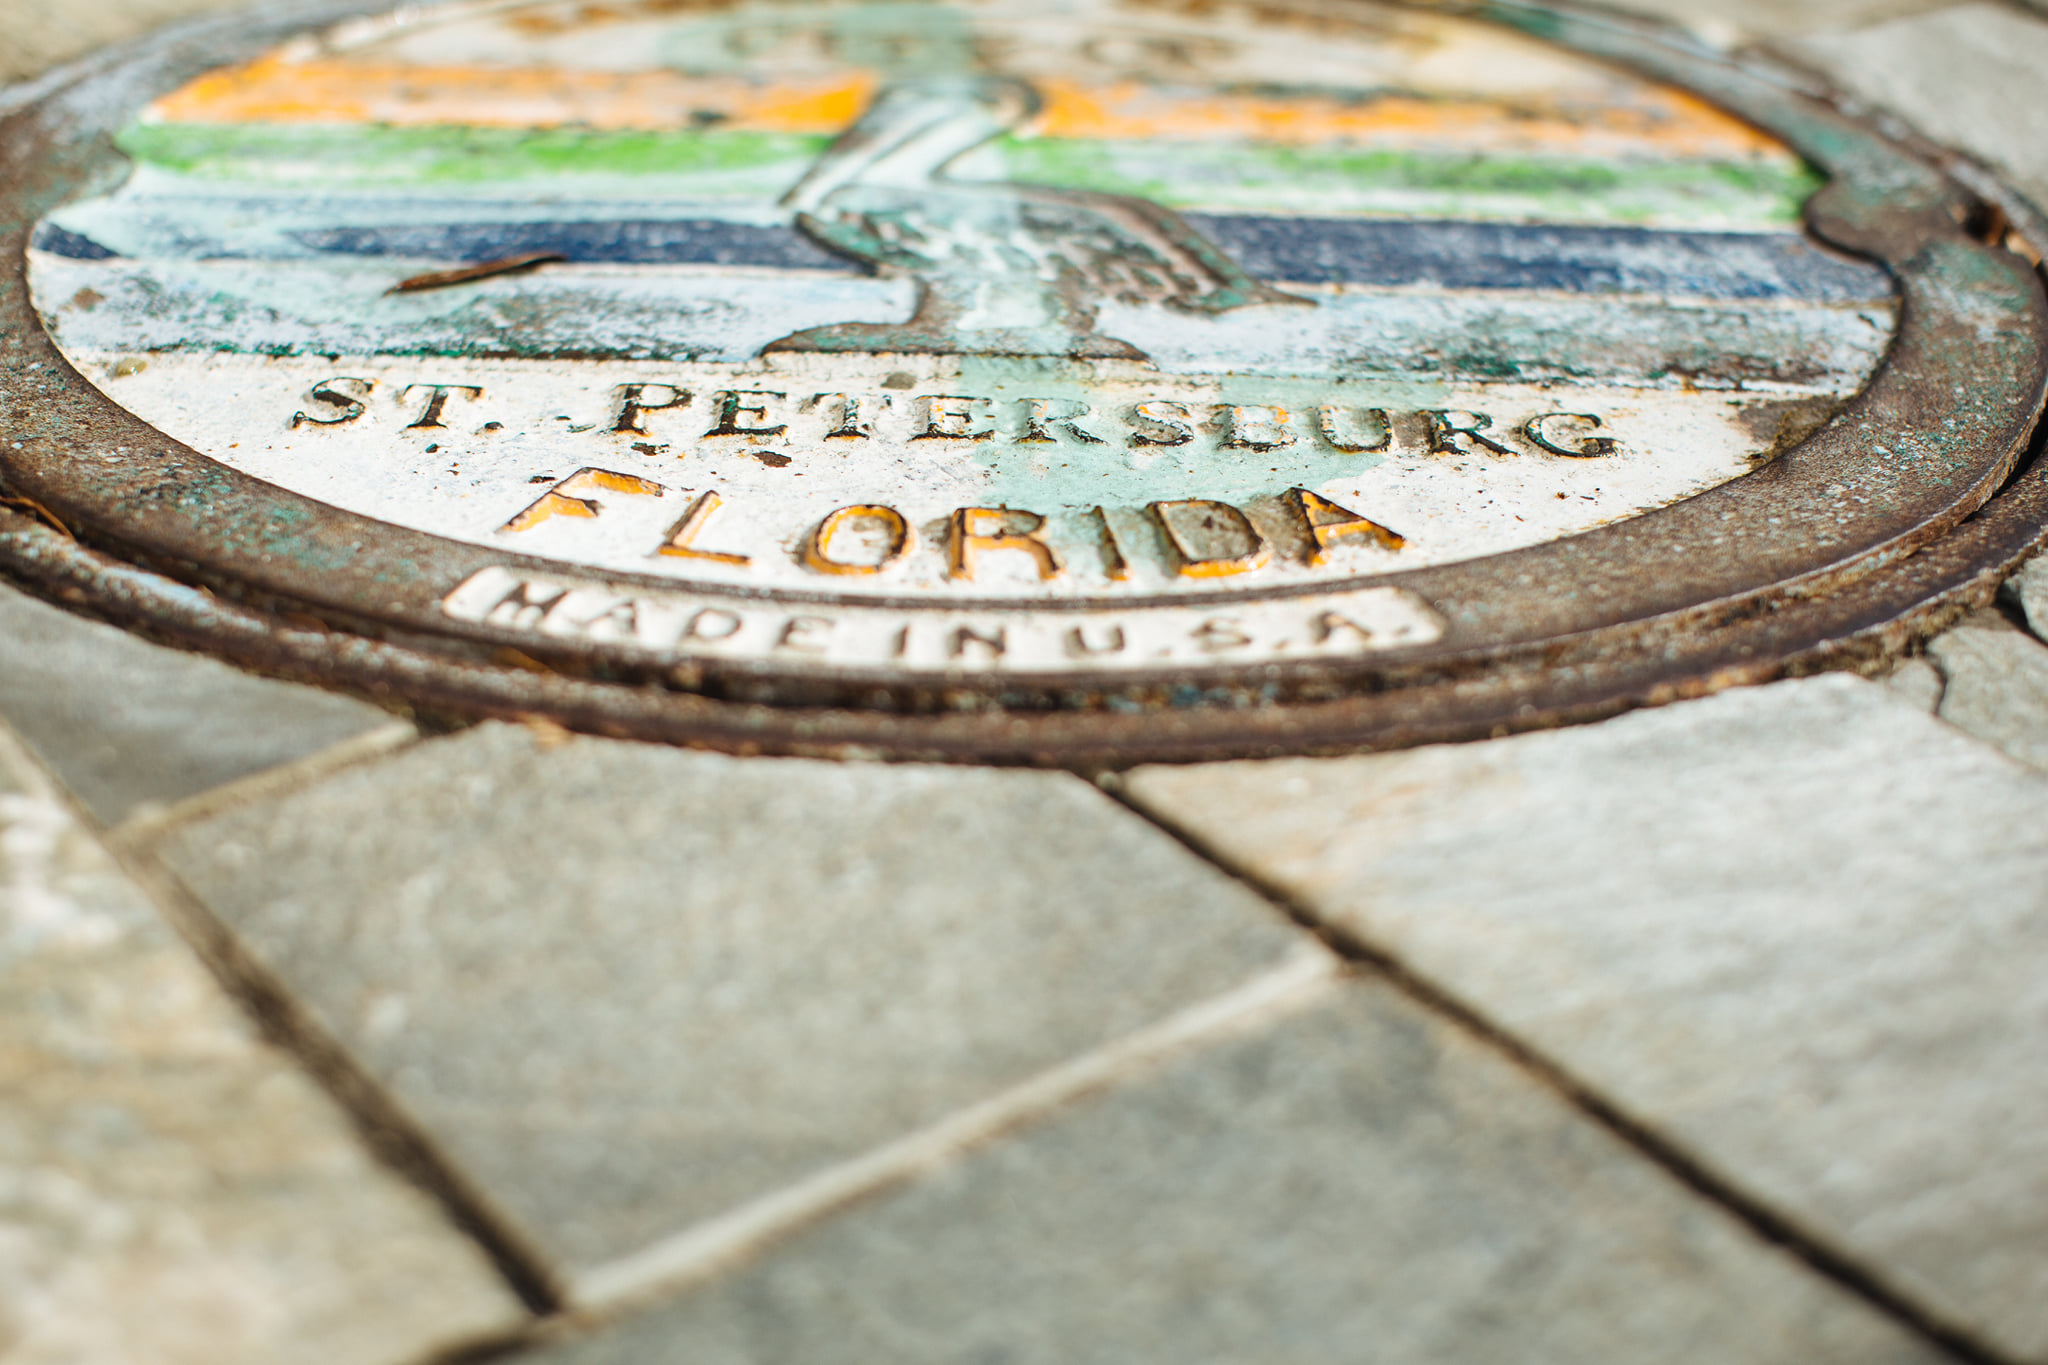 A colorful manhole cover from the city of St. Petersburg Florida